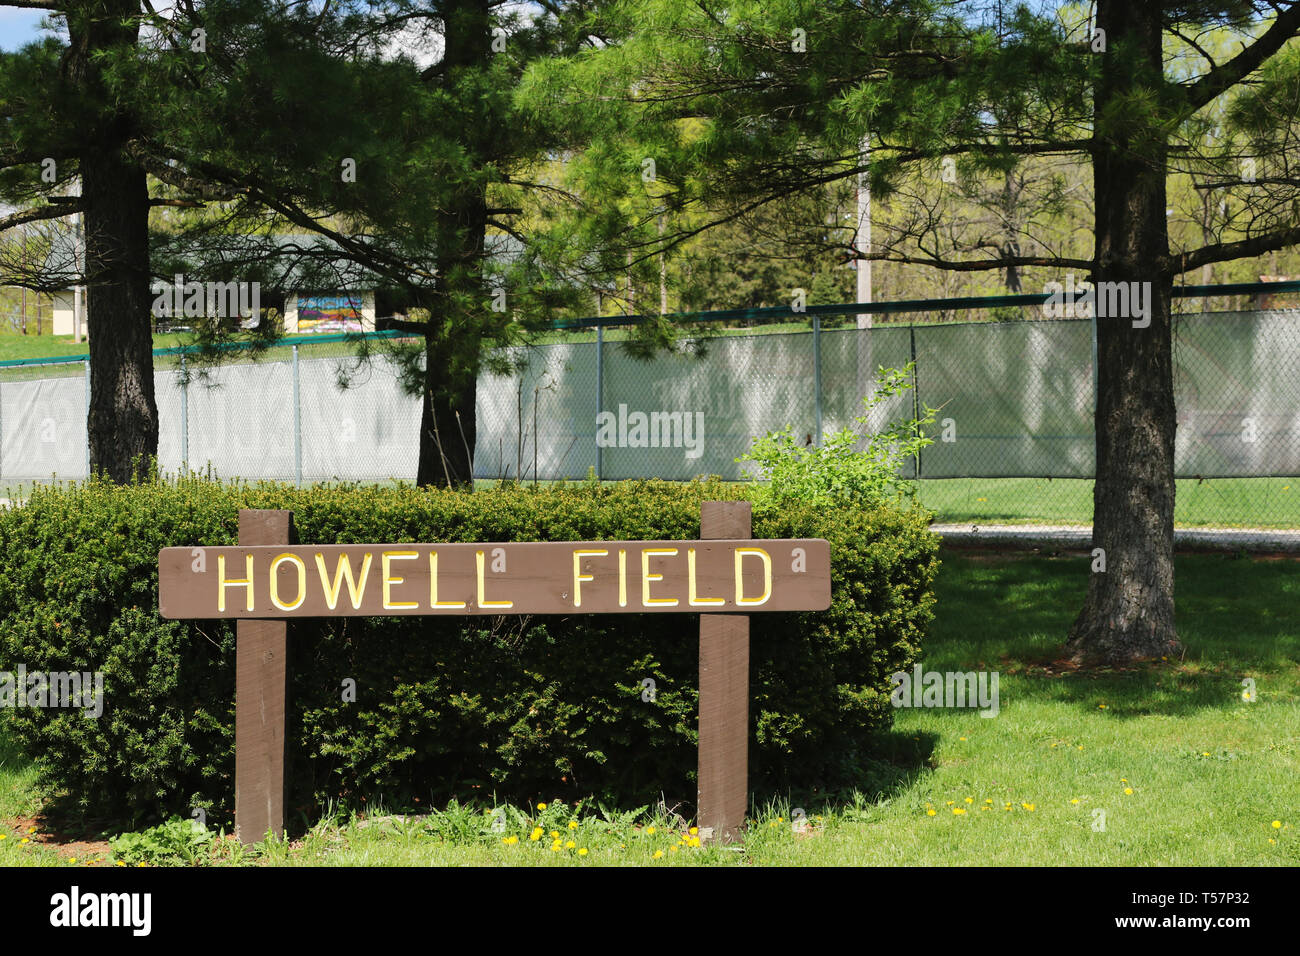 Howell Field sign. The site of the first NFL Football game is now the Howell Baseball Field in Triangle Park, Dayton, Ohio, USA. Ohio Historical Marke - Stock Image